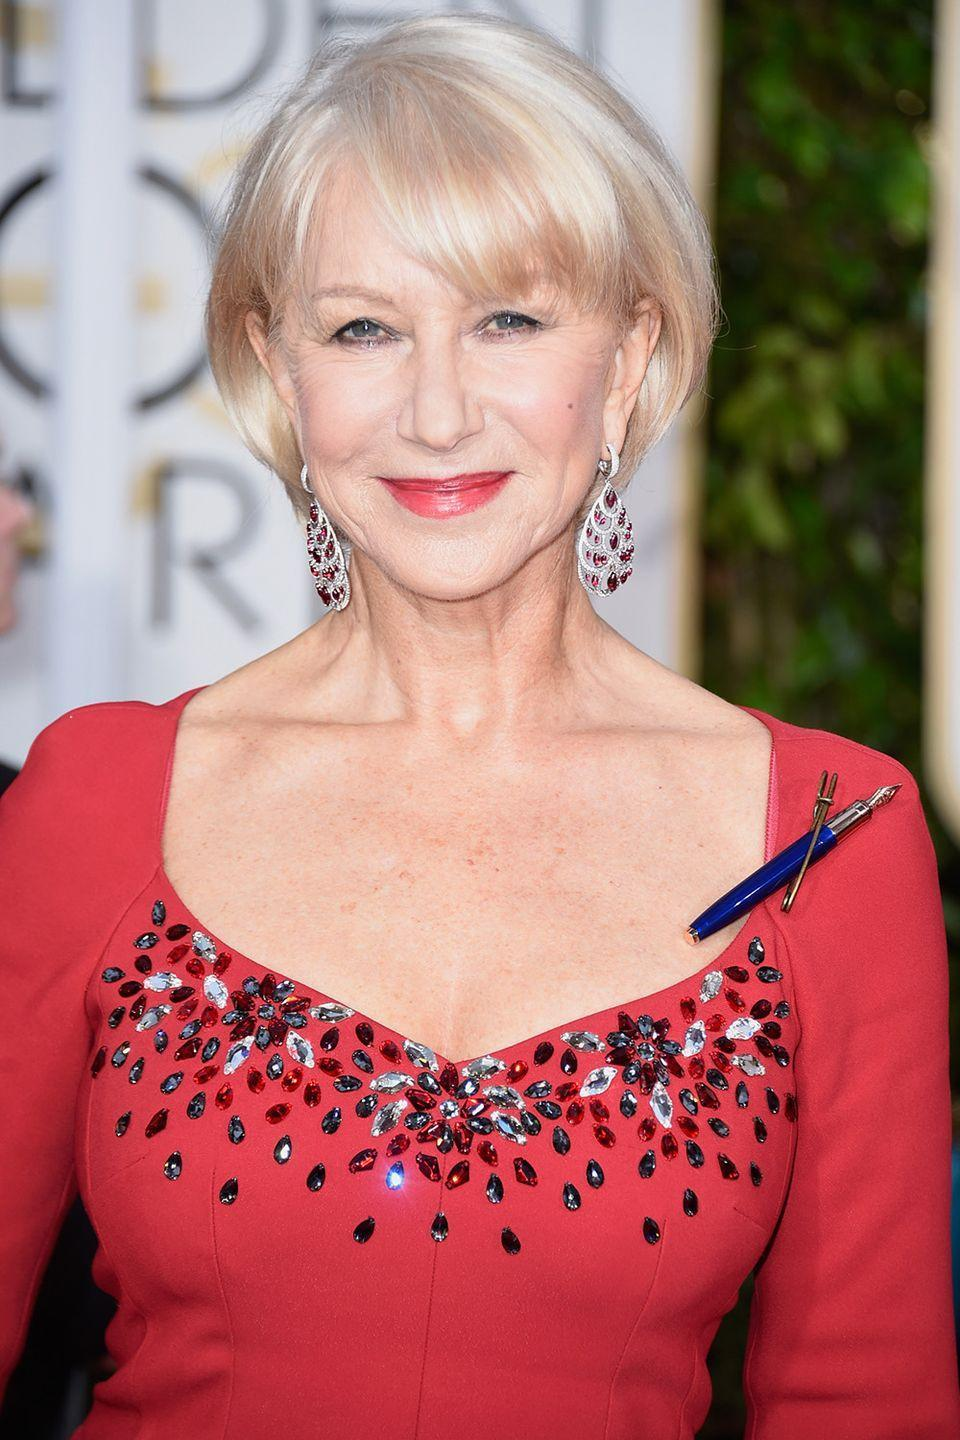 """<p><strong>Born</strong>: Ilyena Lydia Mironoff</p><p>The British actress was actually born Ilyena Lydia Mironoff, but her father <a href=""""https://us.hellomagazine.com/profiles/helen-mirren/"""" rel=""""nofollow noopener"""" target=""""_blank"""" data-ylk=""""slk:changed"""" class=""""link rapid-noclick-resp"""">changed</a> the family's last name from Mironoff to Mirren in the fifties. Ilynea then simplified her first name to Helen when she embarked on her acting career.</p>"""